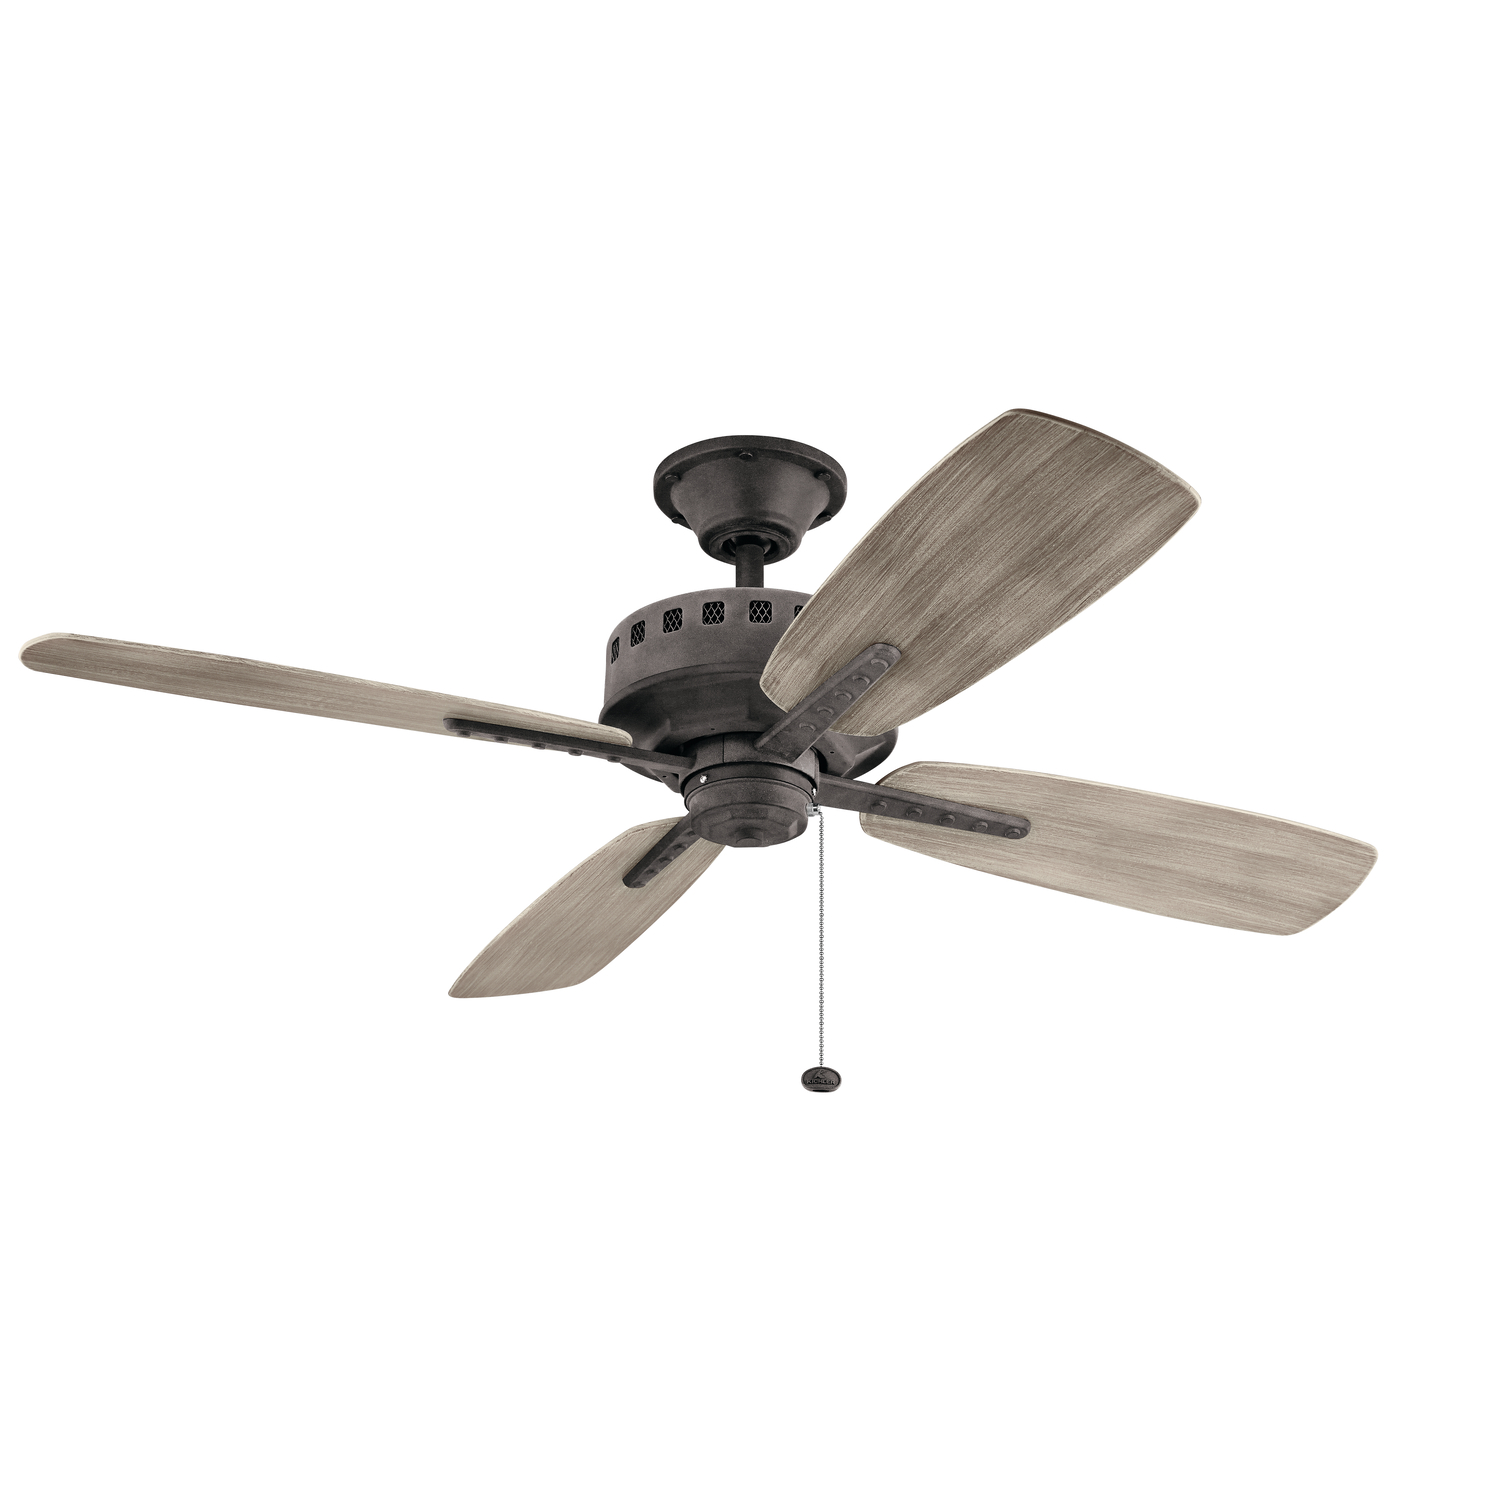 52 inchCeiling Fan from the Eads collection by Kichler 310152WZC